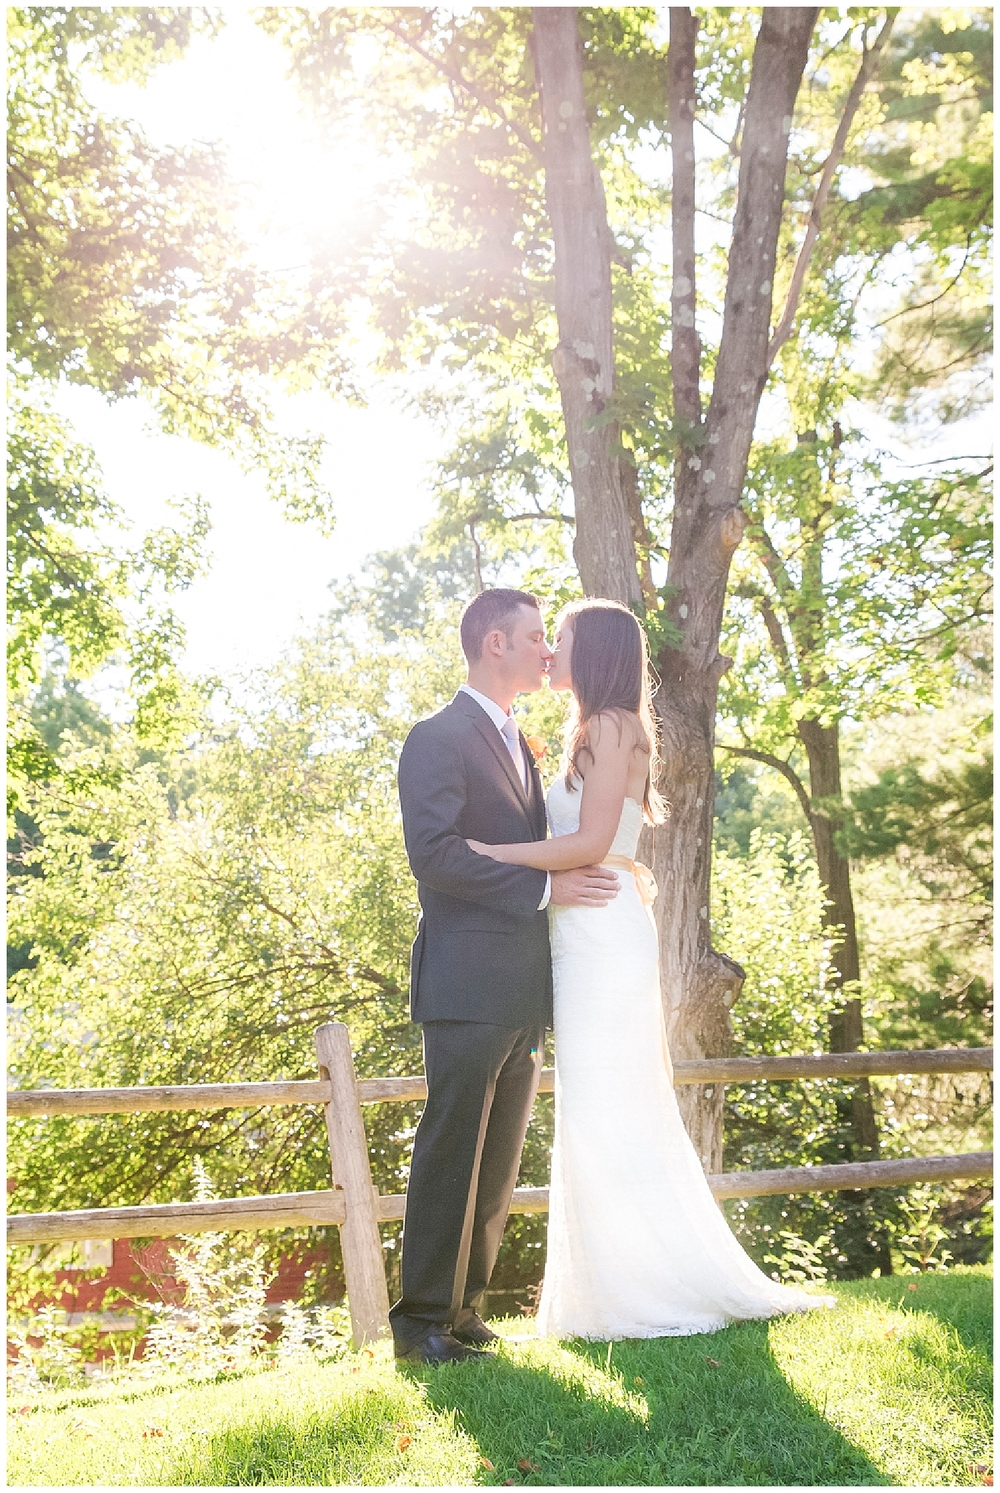 Red Oak Weddings | Preferred Vendor Guide | Brielle Kaschak Photography